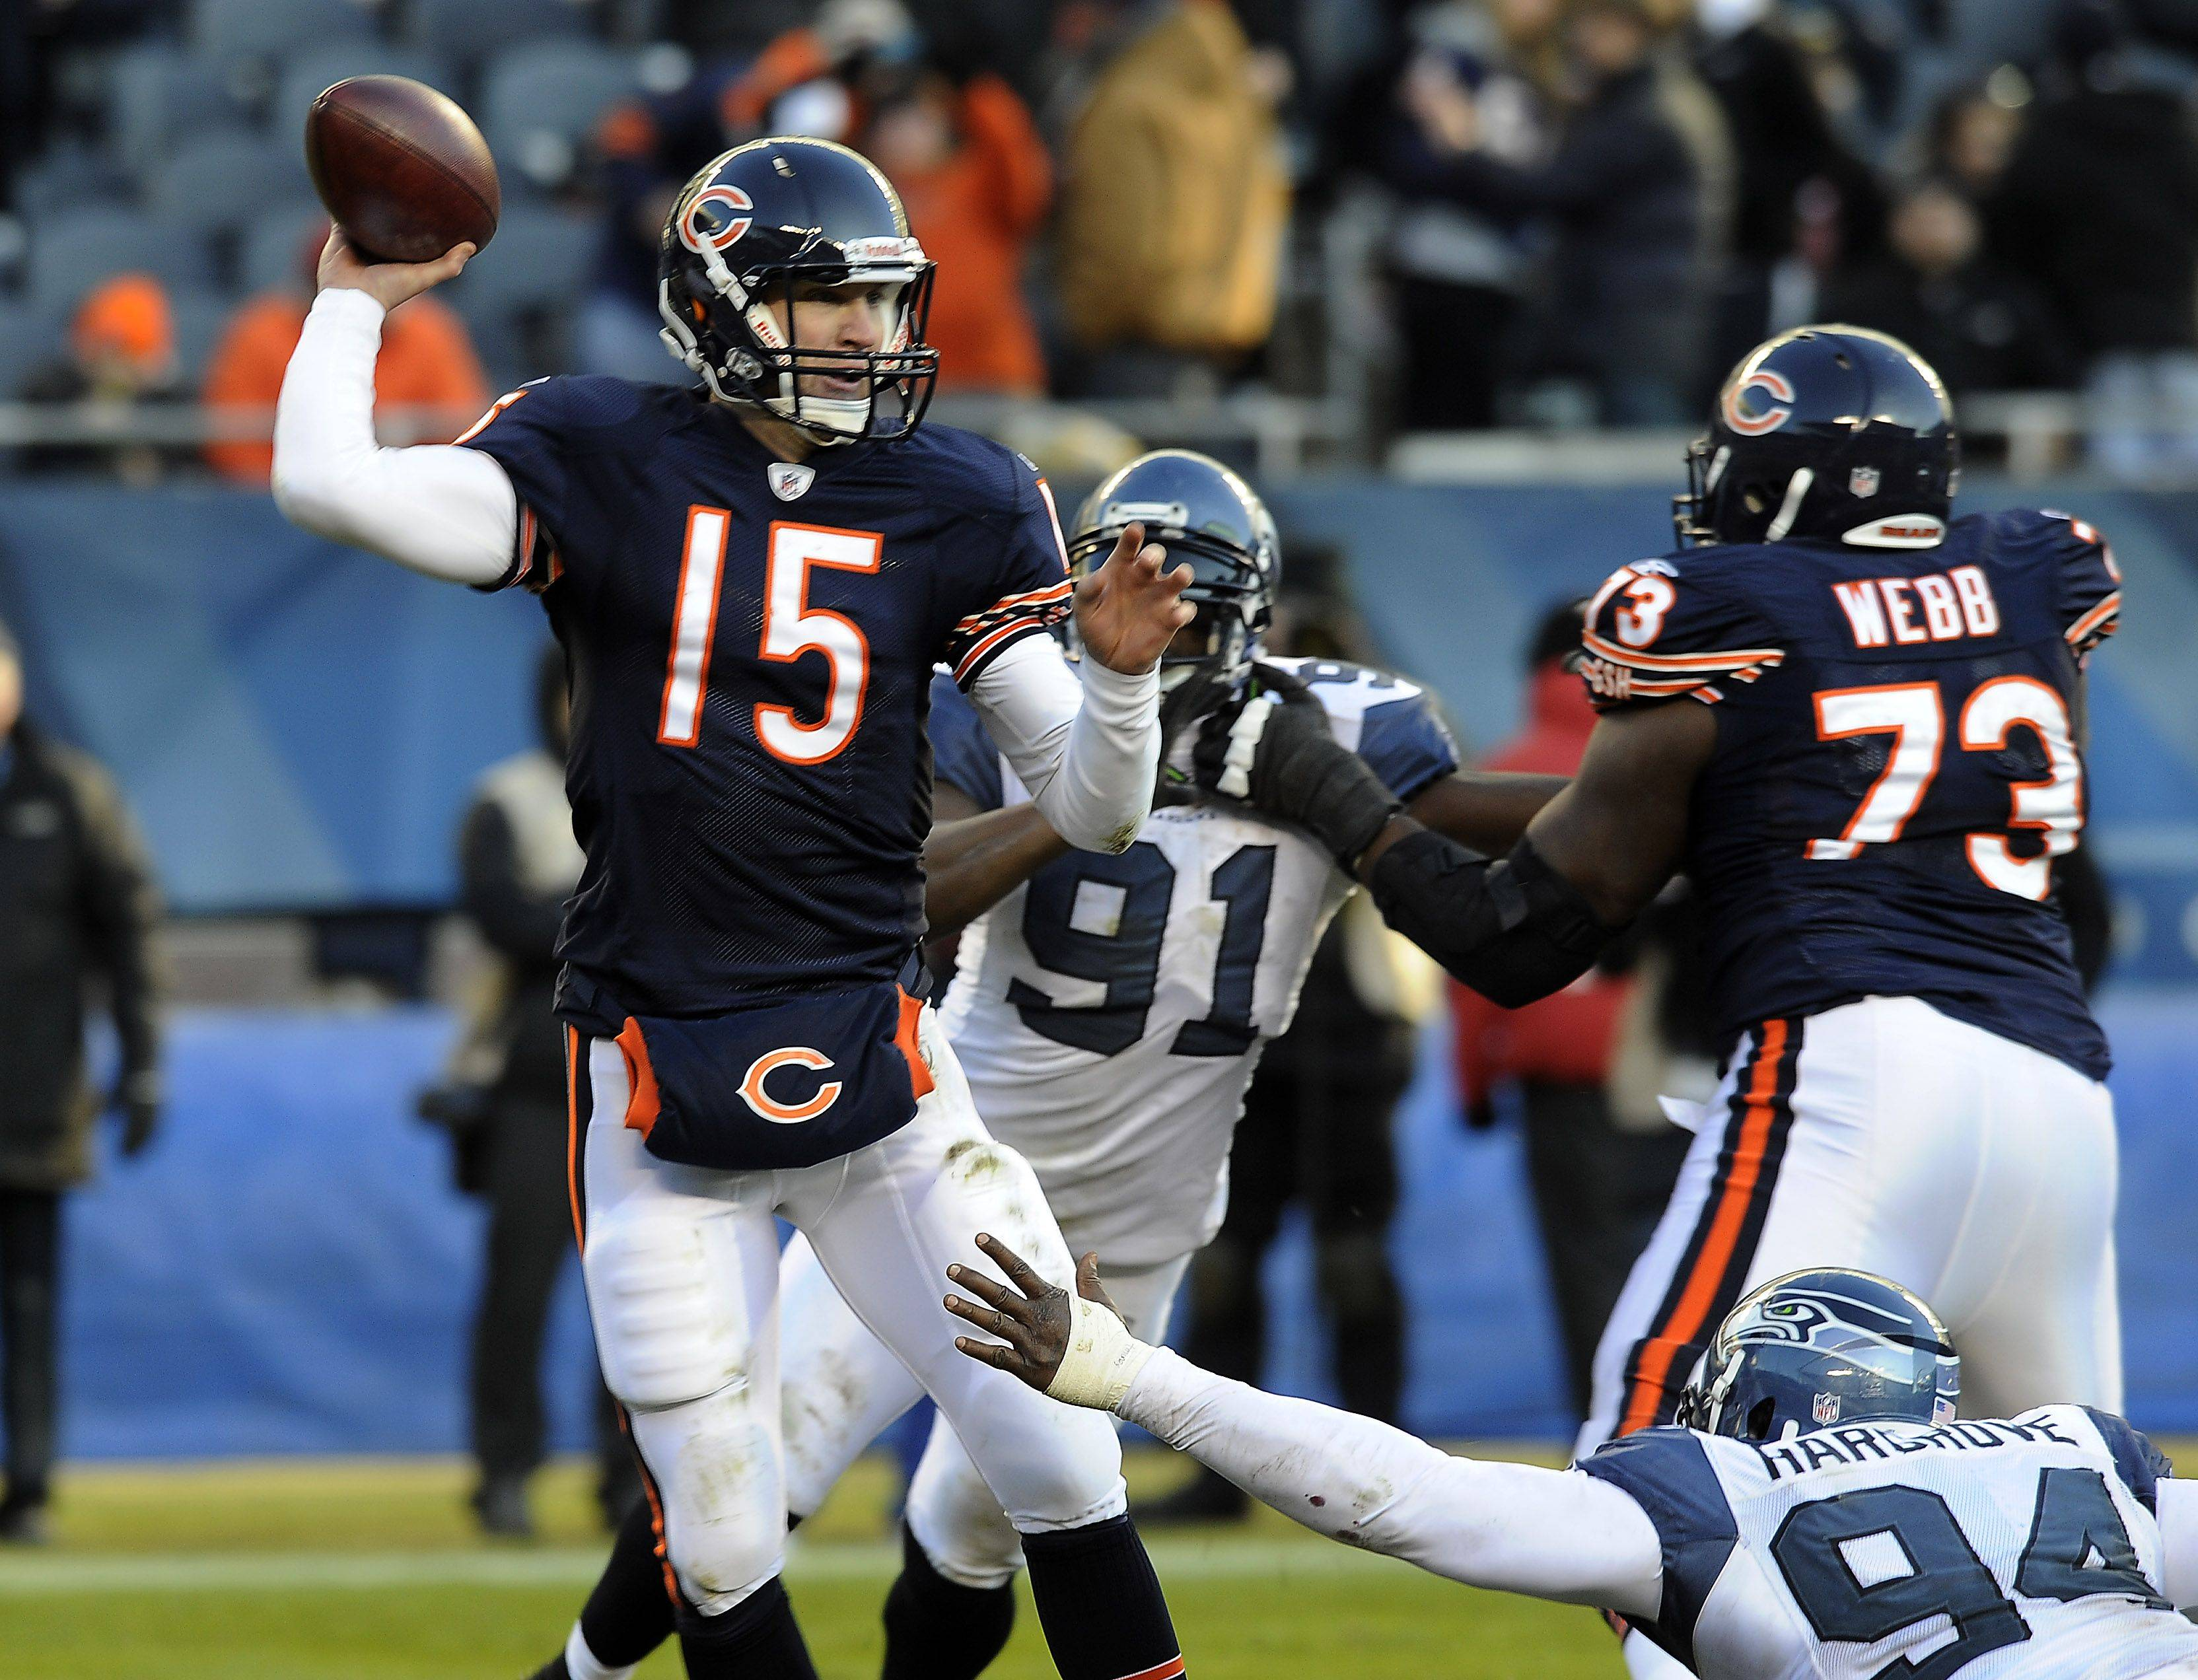 Quarterback Josh McCown could get more snaps in practice Wednesday as the Bears prepare for their visit to Green Bay on Christmas night.